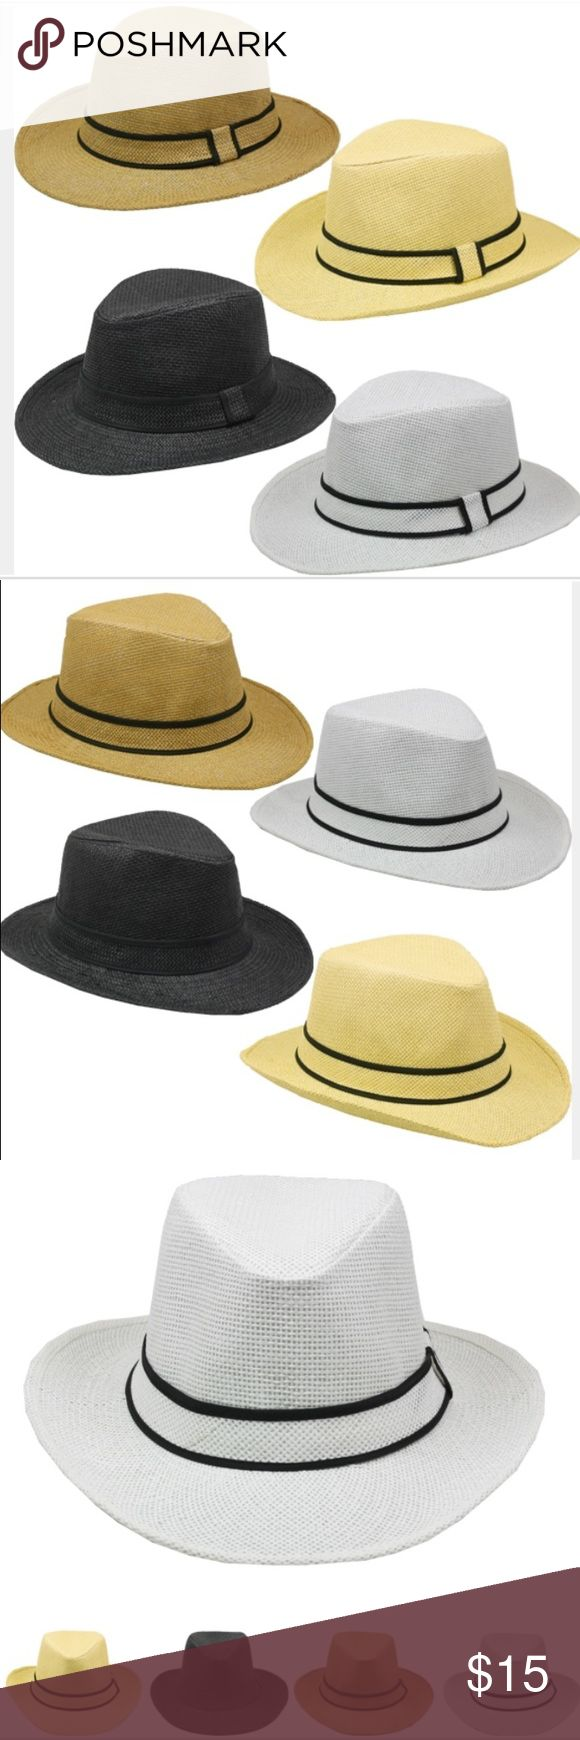 Men summer hat cap popular beach fashion women This Hats And Caps Men Summer Hats Which Is Called Men Summer Hat 038 Mix Color Is From Our Finest Collection. . We Believe That You Will Feel The Difference And Appreciate When You Receive This Men Summer Hat 038 Mix Color. If You Want To Grab Your Friends' Attention This Men Summer Hat 038 Mix Color Would Be The Best Option That You Might Have. Related Products Accessories Hats